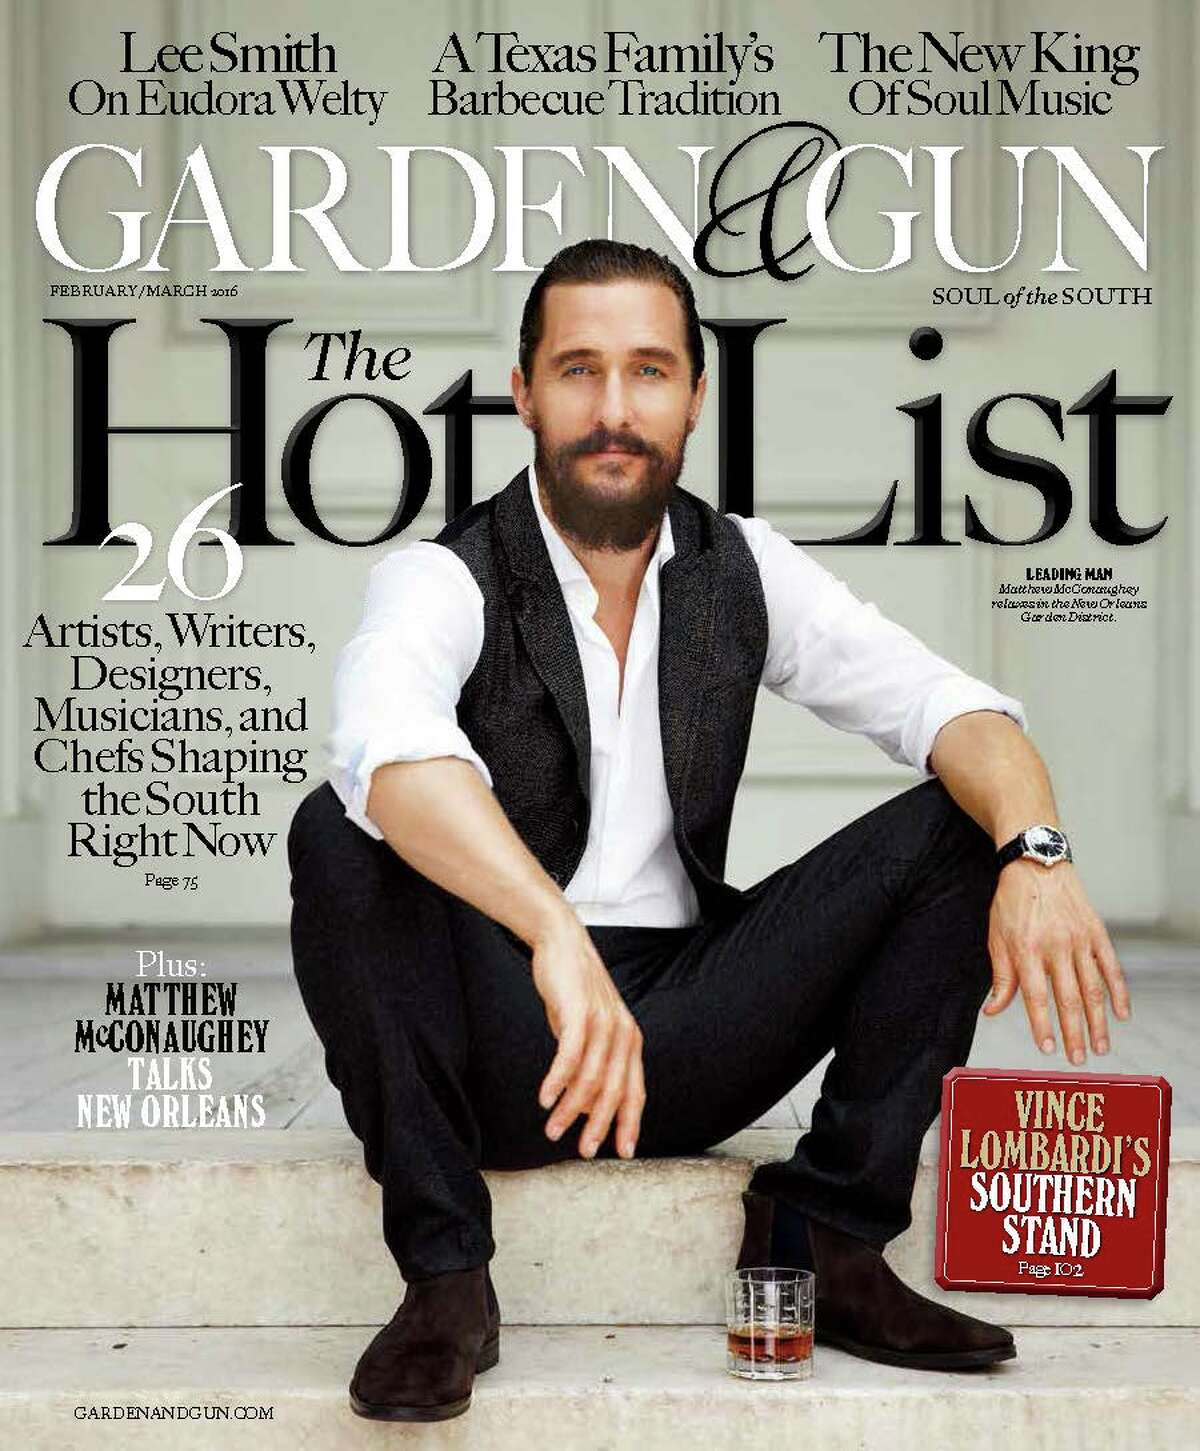 """Cover of the February/March issue of Garden & Gun magazine featuring """"The Southern Hot List"""" of Southern talent. The spread includes an article about enterprising Southern chefs that includes Houston's PJ Stoops of the new Foreign Correspondents northern Thai restaurant."""